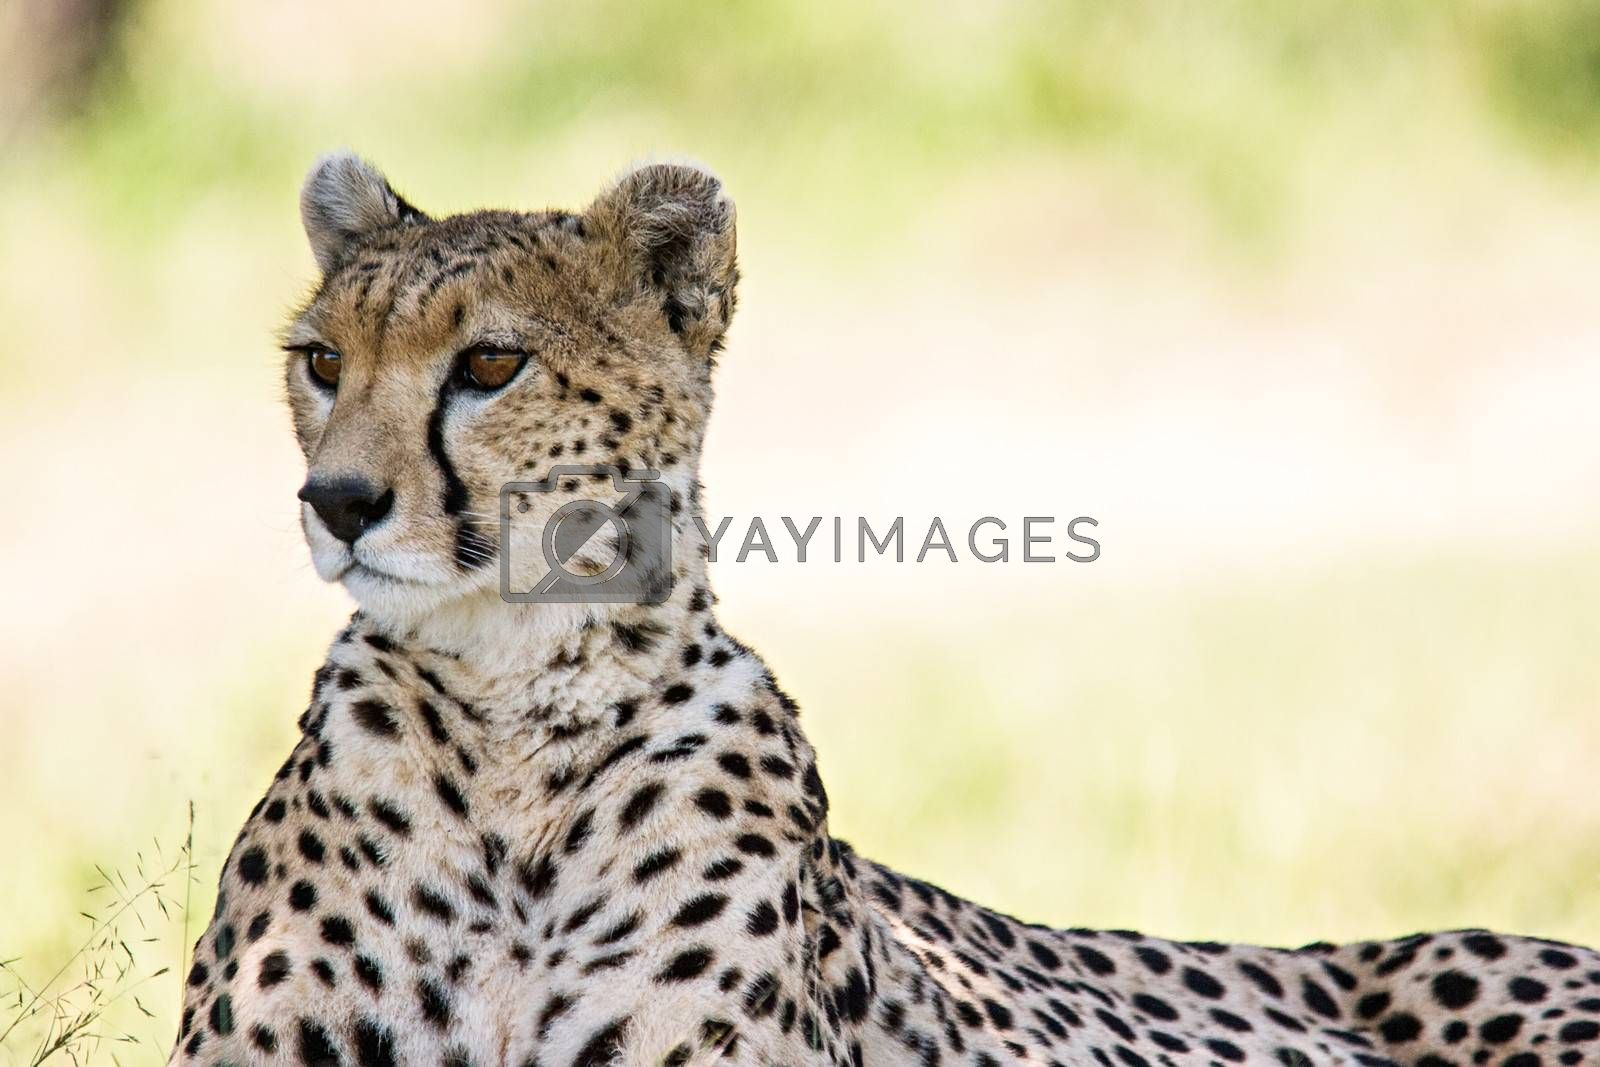 Royalty free image of Cheetah Portrait by ajn